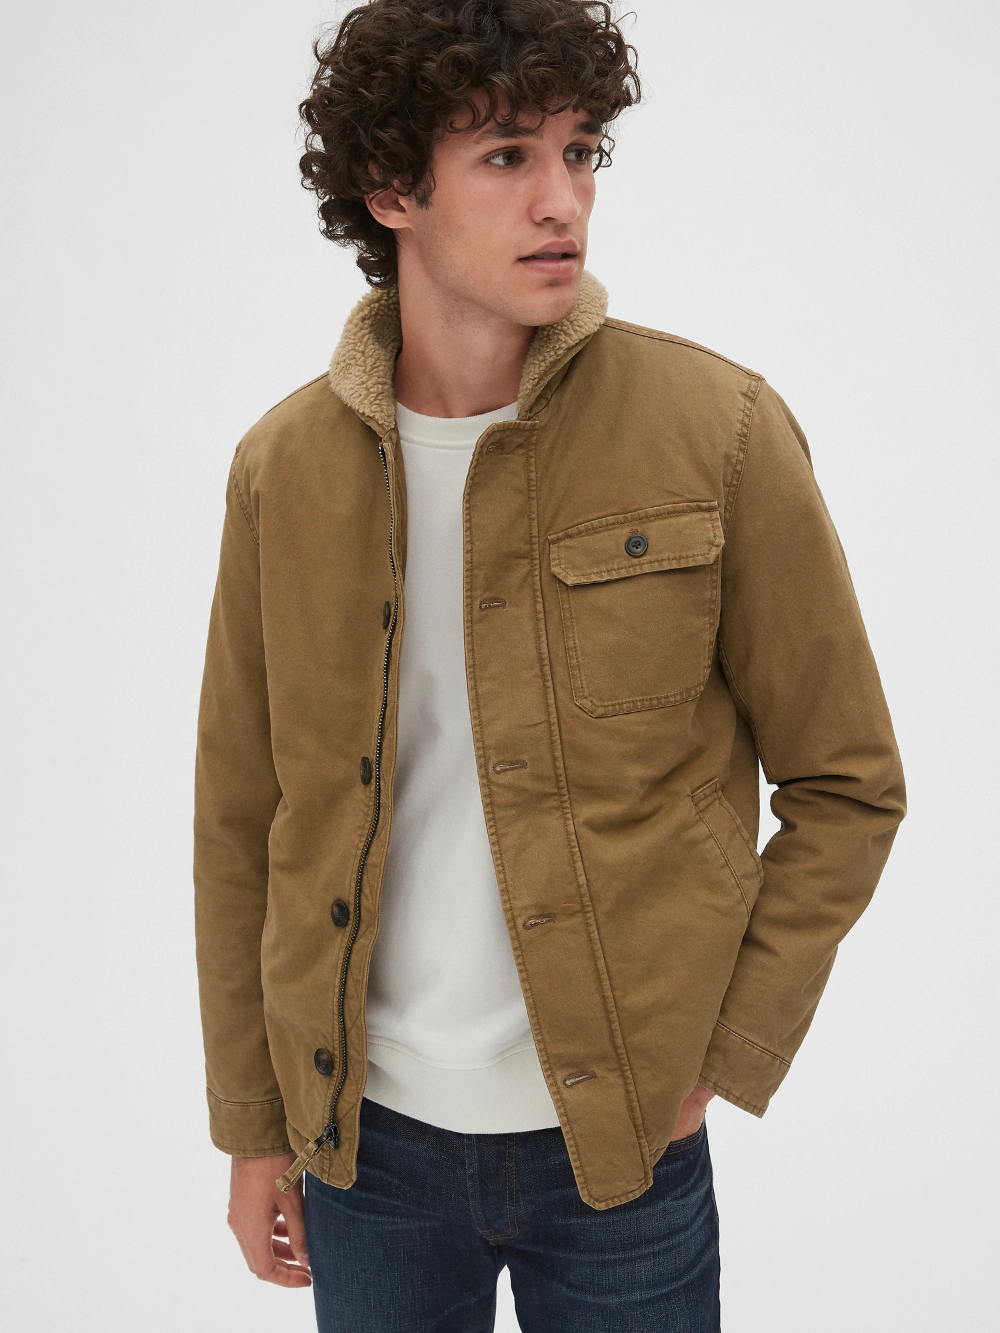 Sherpa Lined Deck Jacket Gap Men S Coats And Jackets Jackets Sherpa Jacket Mens Outfit [ 1333 x 1000 Pixel ]